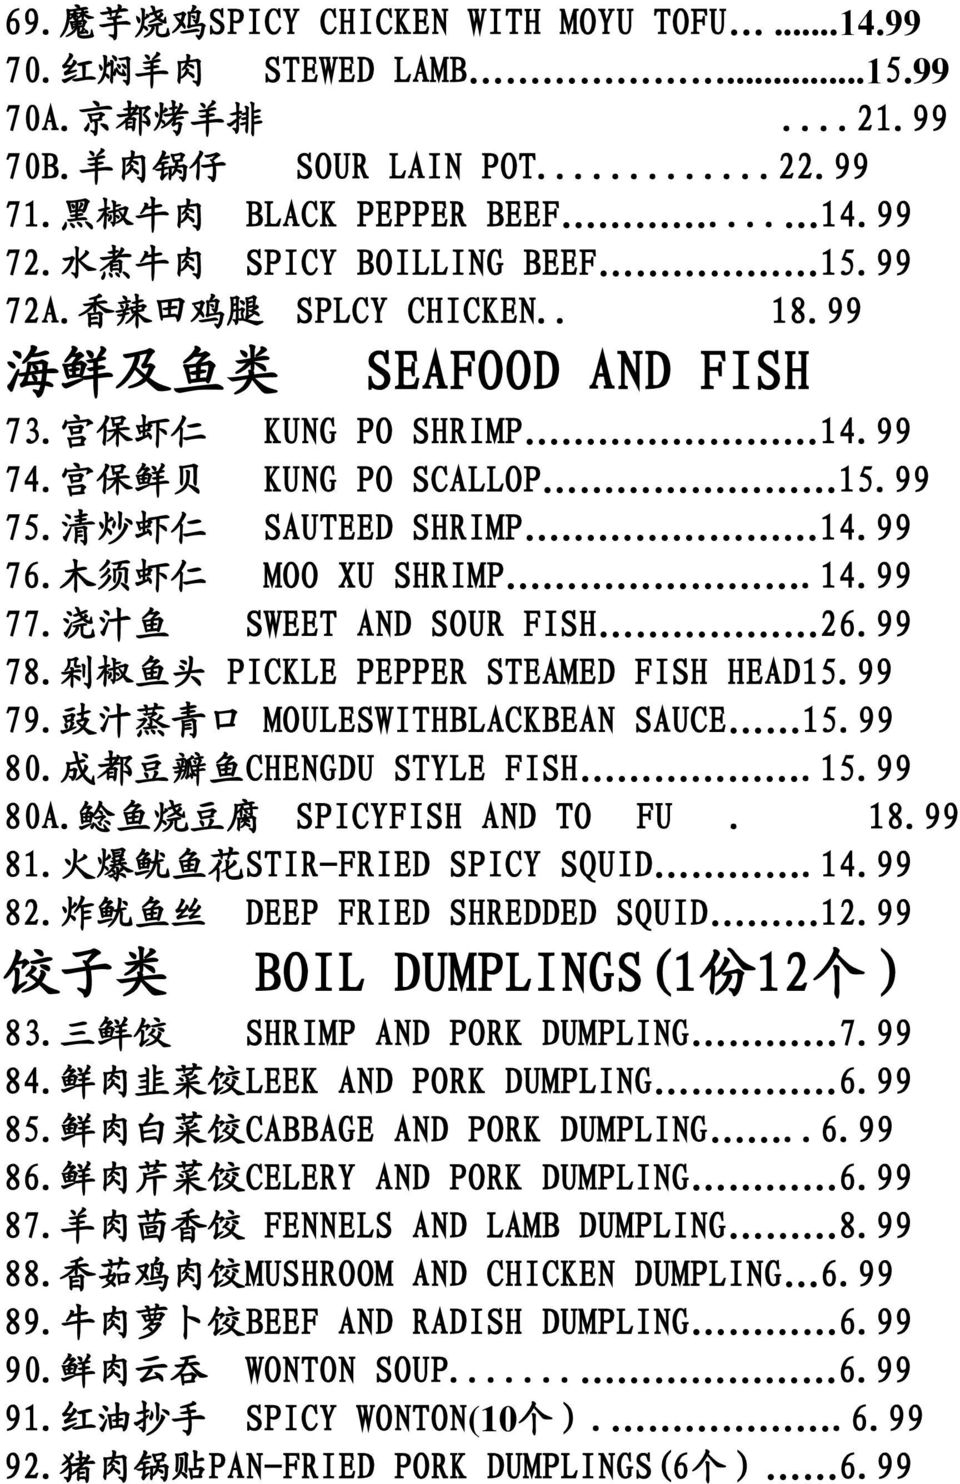 99 76. 木 须 虾 仁 MOO XU SHRIMP.14.99 77. 浇 汁 鱼 SWEET AND SOUR FISH 26.99 78. 剁 椒 鱼 头 PICKLE PEPPER STEAMED FISH HEAD15.99 79. 豉 汁 蒸 青 口 MOULESWITHBLACKBEAN SAUCE 15.99 80. 成 都 豆 瓣 鱼 CHENGDU STYLE FISH.